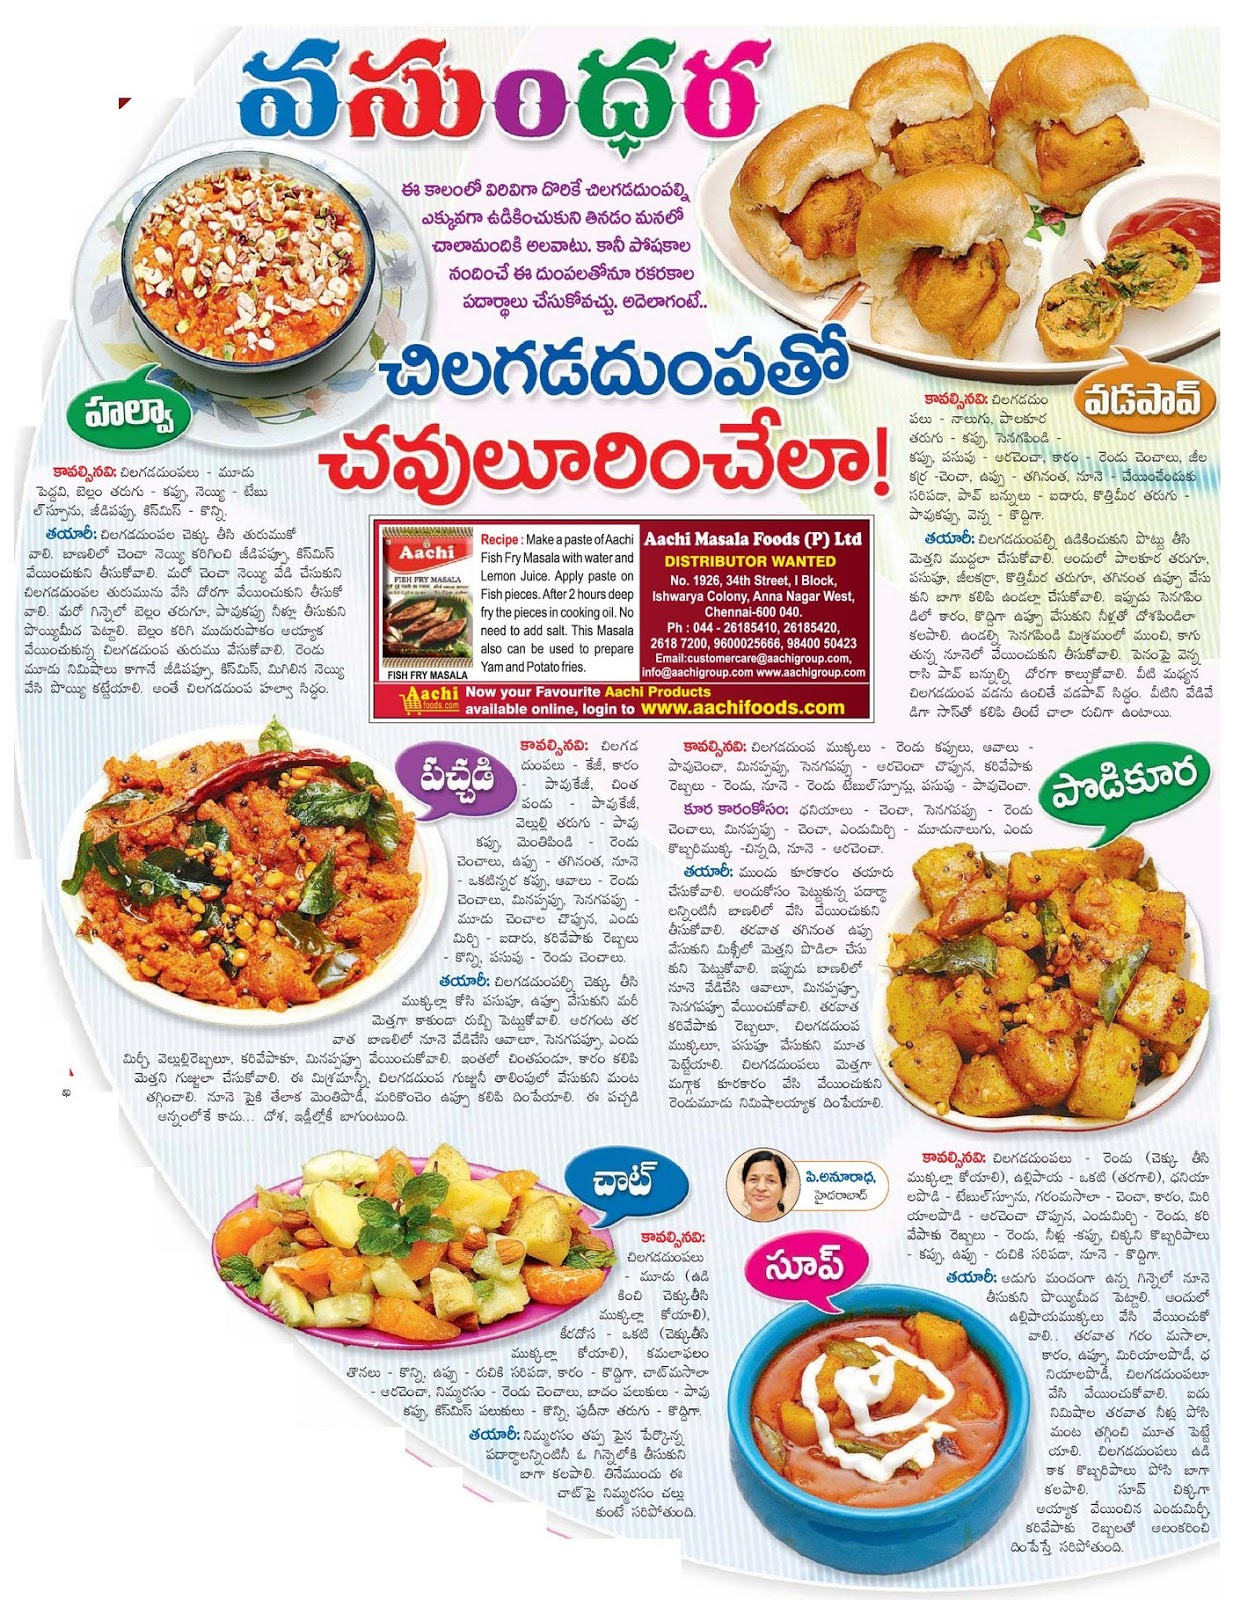 2015 telugu recipescurries makingvantalu for best view hover the cursor on image or click on image and zoom forumfinder Image collections